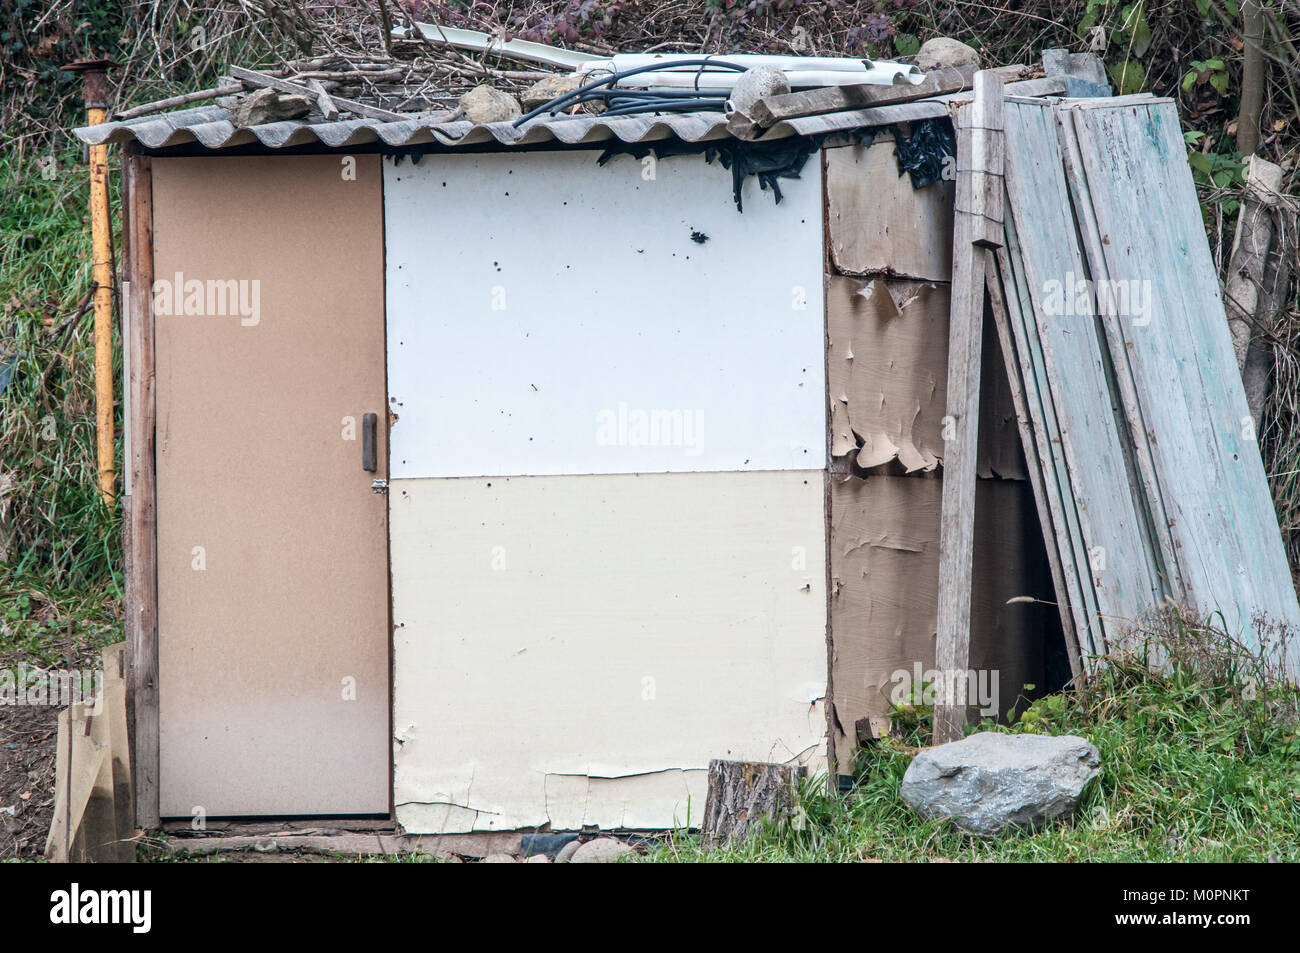 old barrack made with recycled material - Stock Image